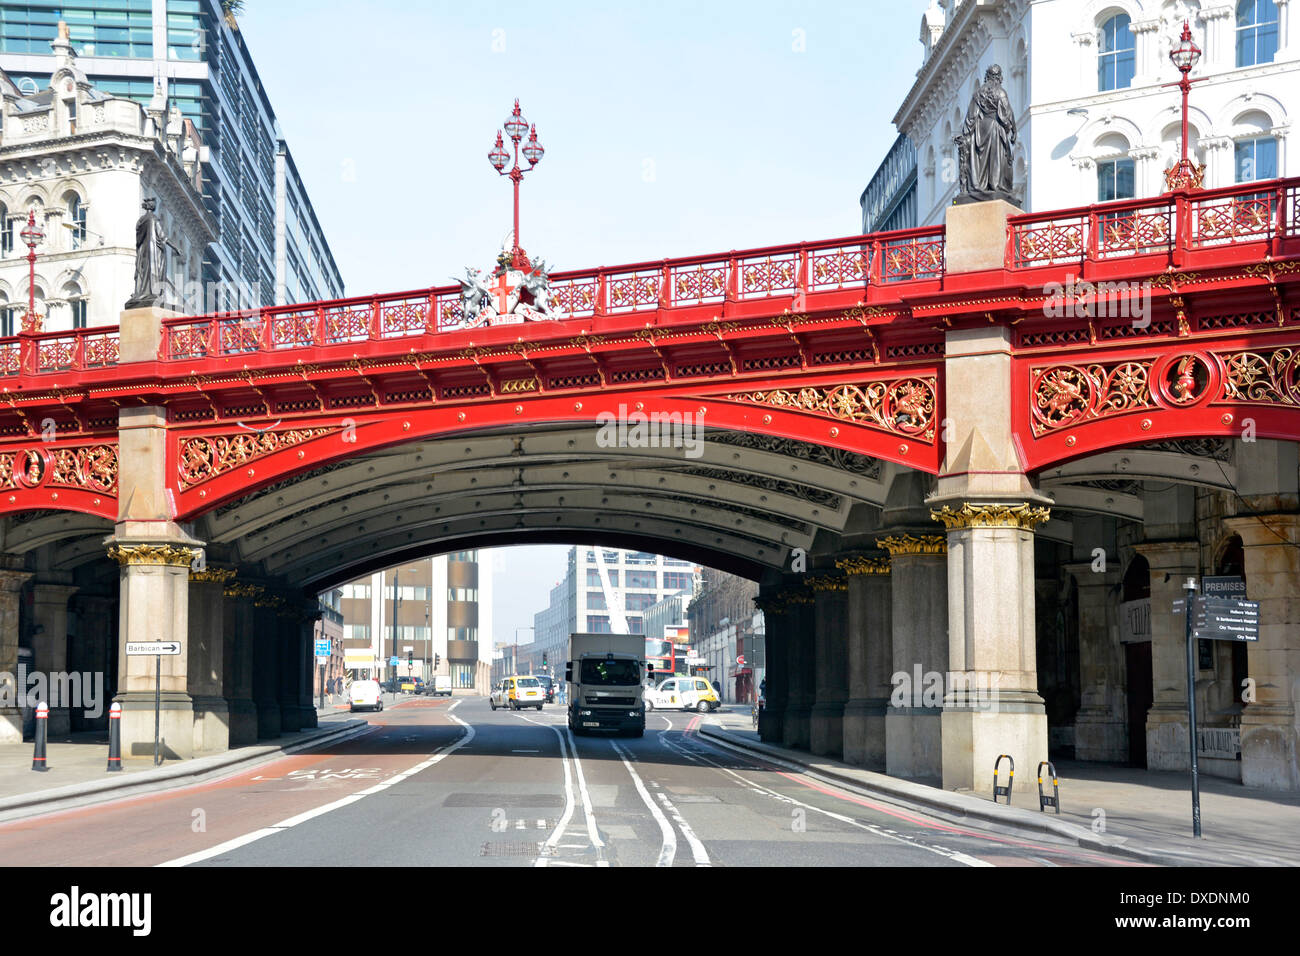 Holborn Viaduct  road bridge crossing over Farringdon Street in City of London (claimed to be first flyover in central London) - Stock Image